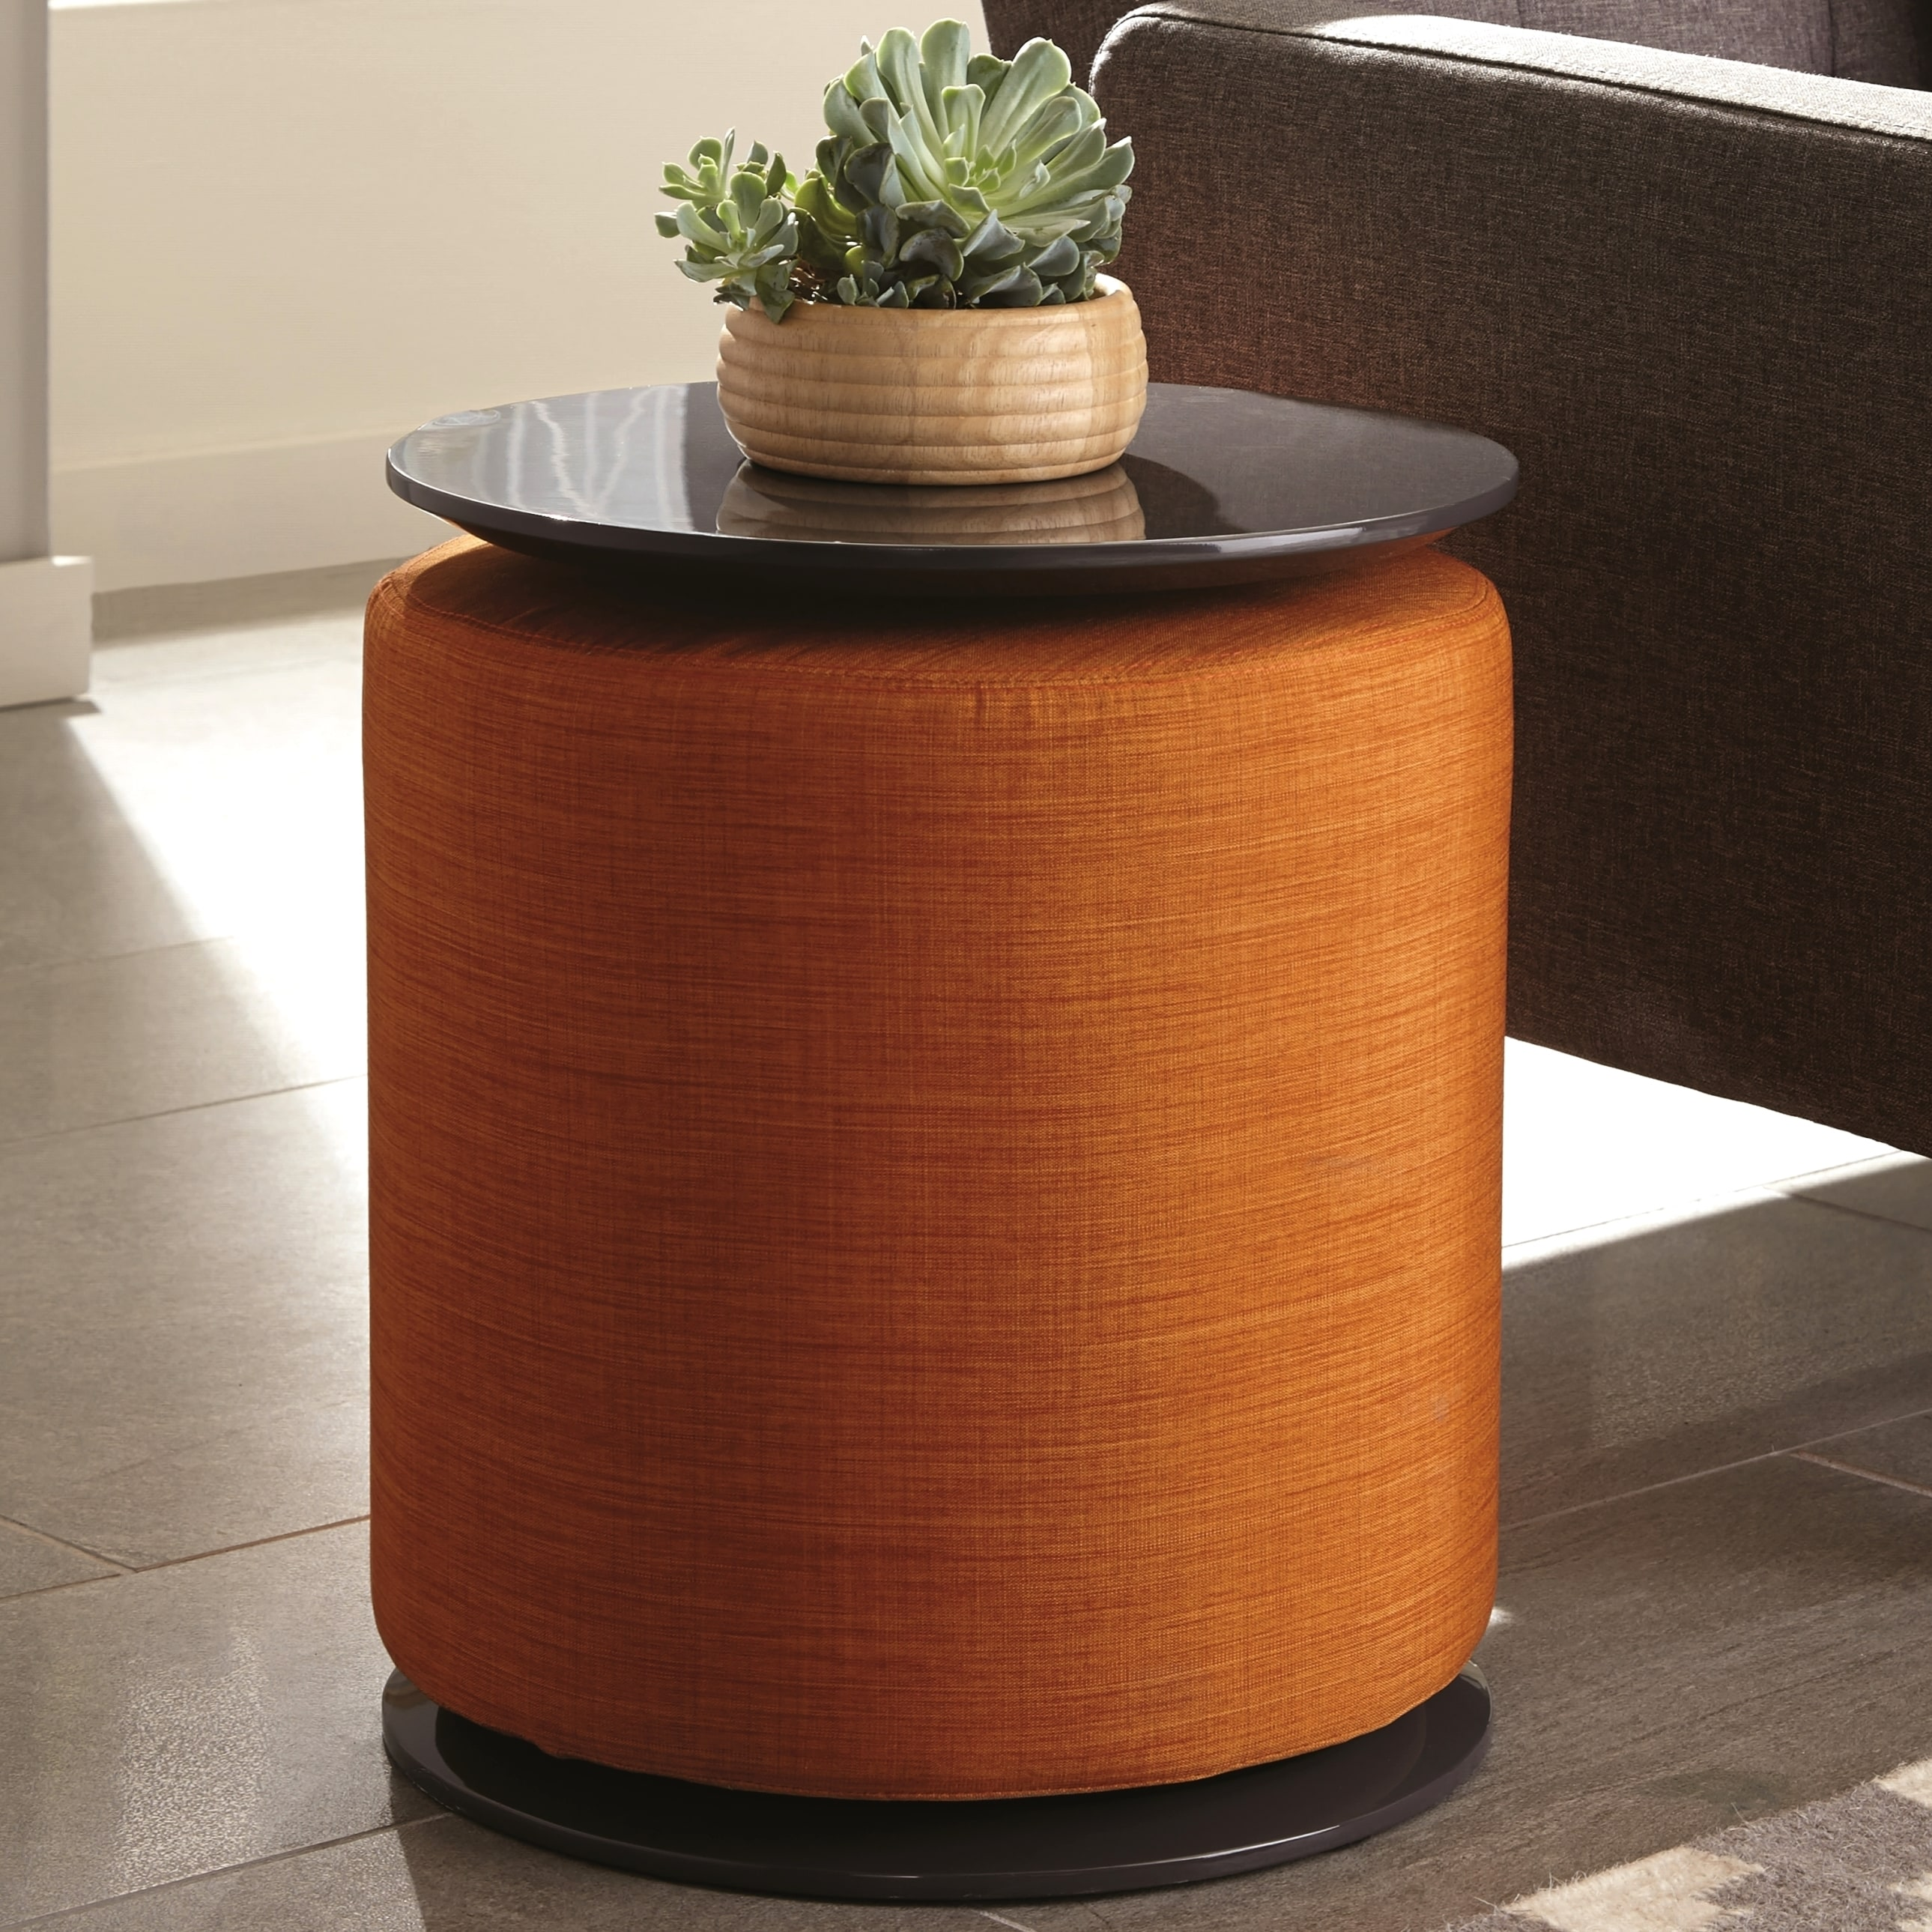 Modern cylinder design accent table with orange ottoman